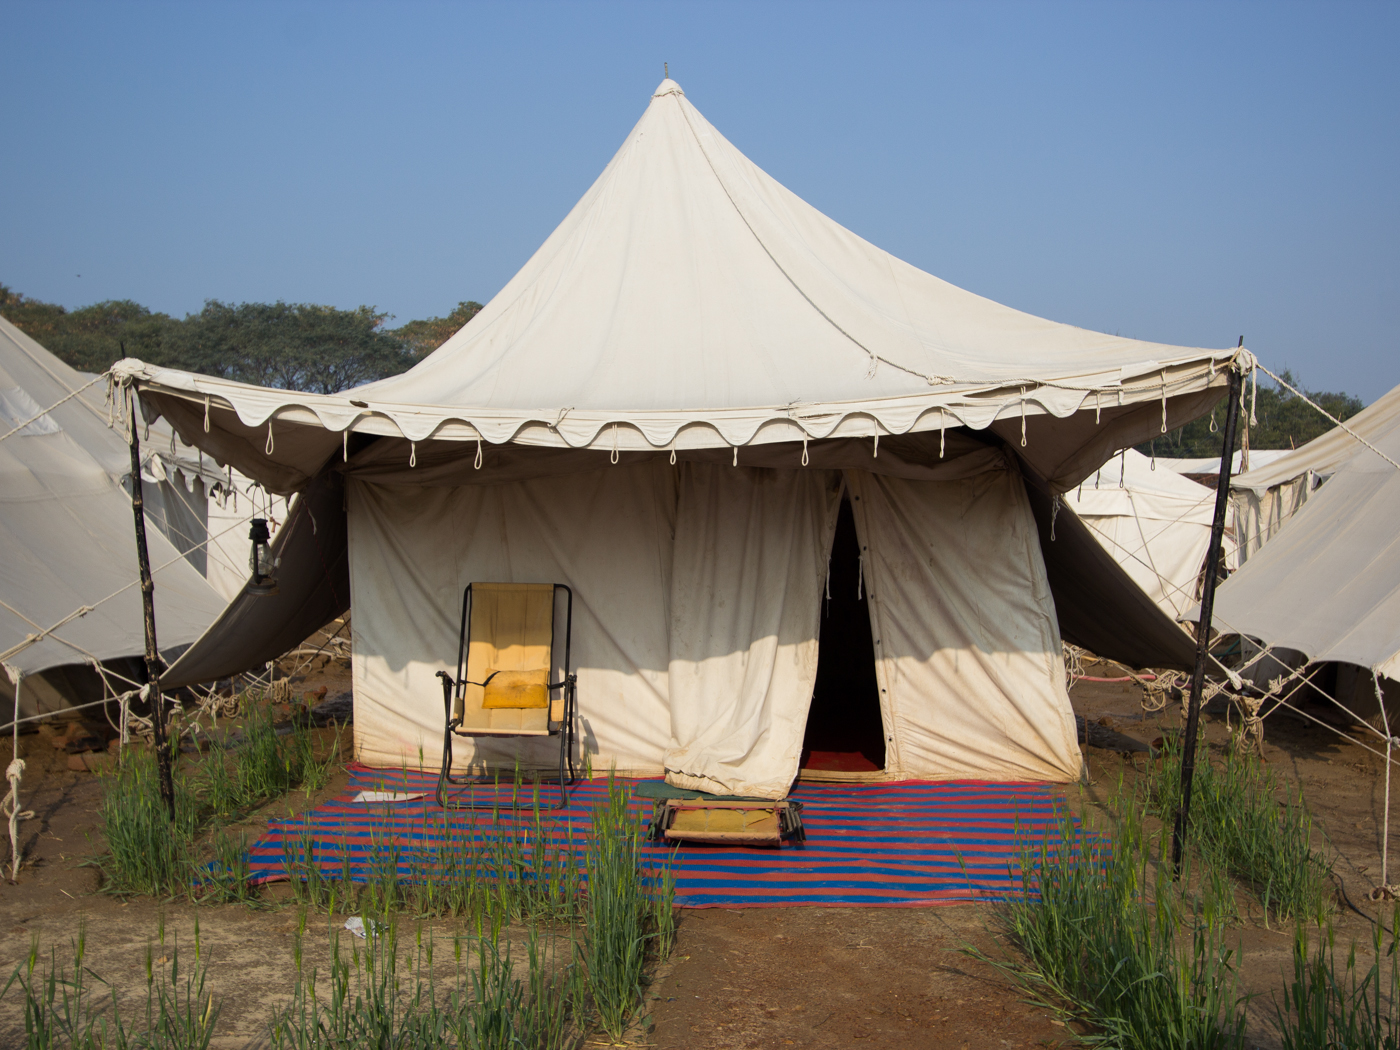 And then the rains came collapsing many of the tents and turning the place into foreclosure-land as contents suddenly were dragged into the open. & Hello Talalay: Camping At The Kumbh